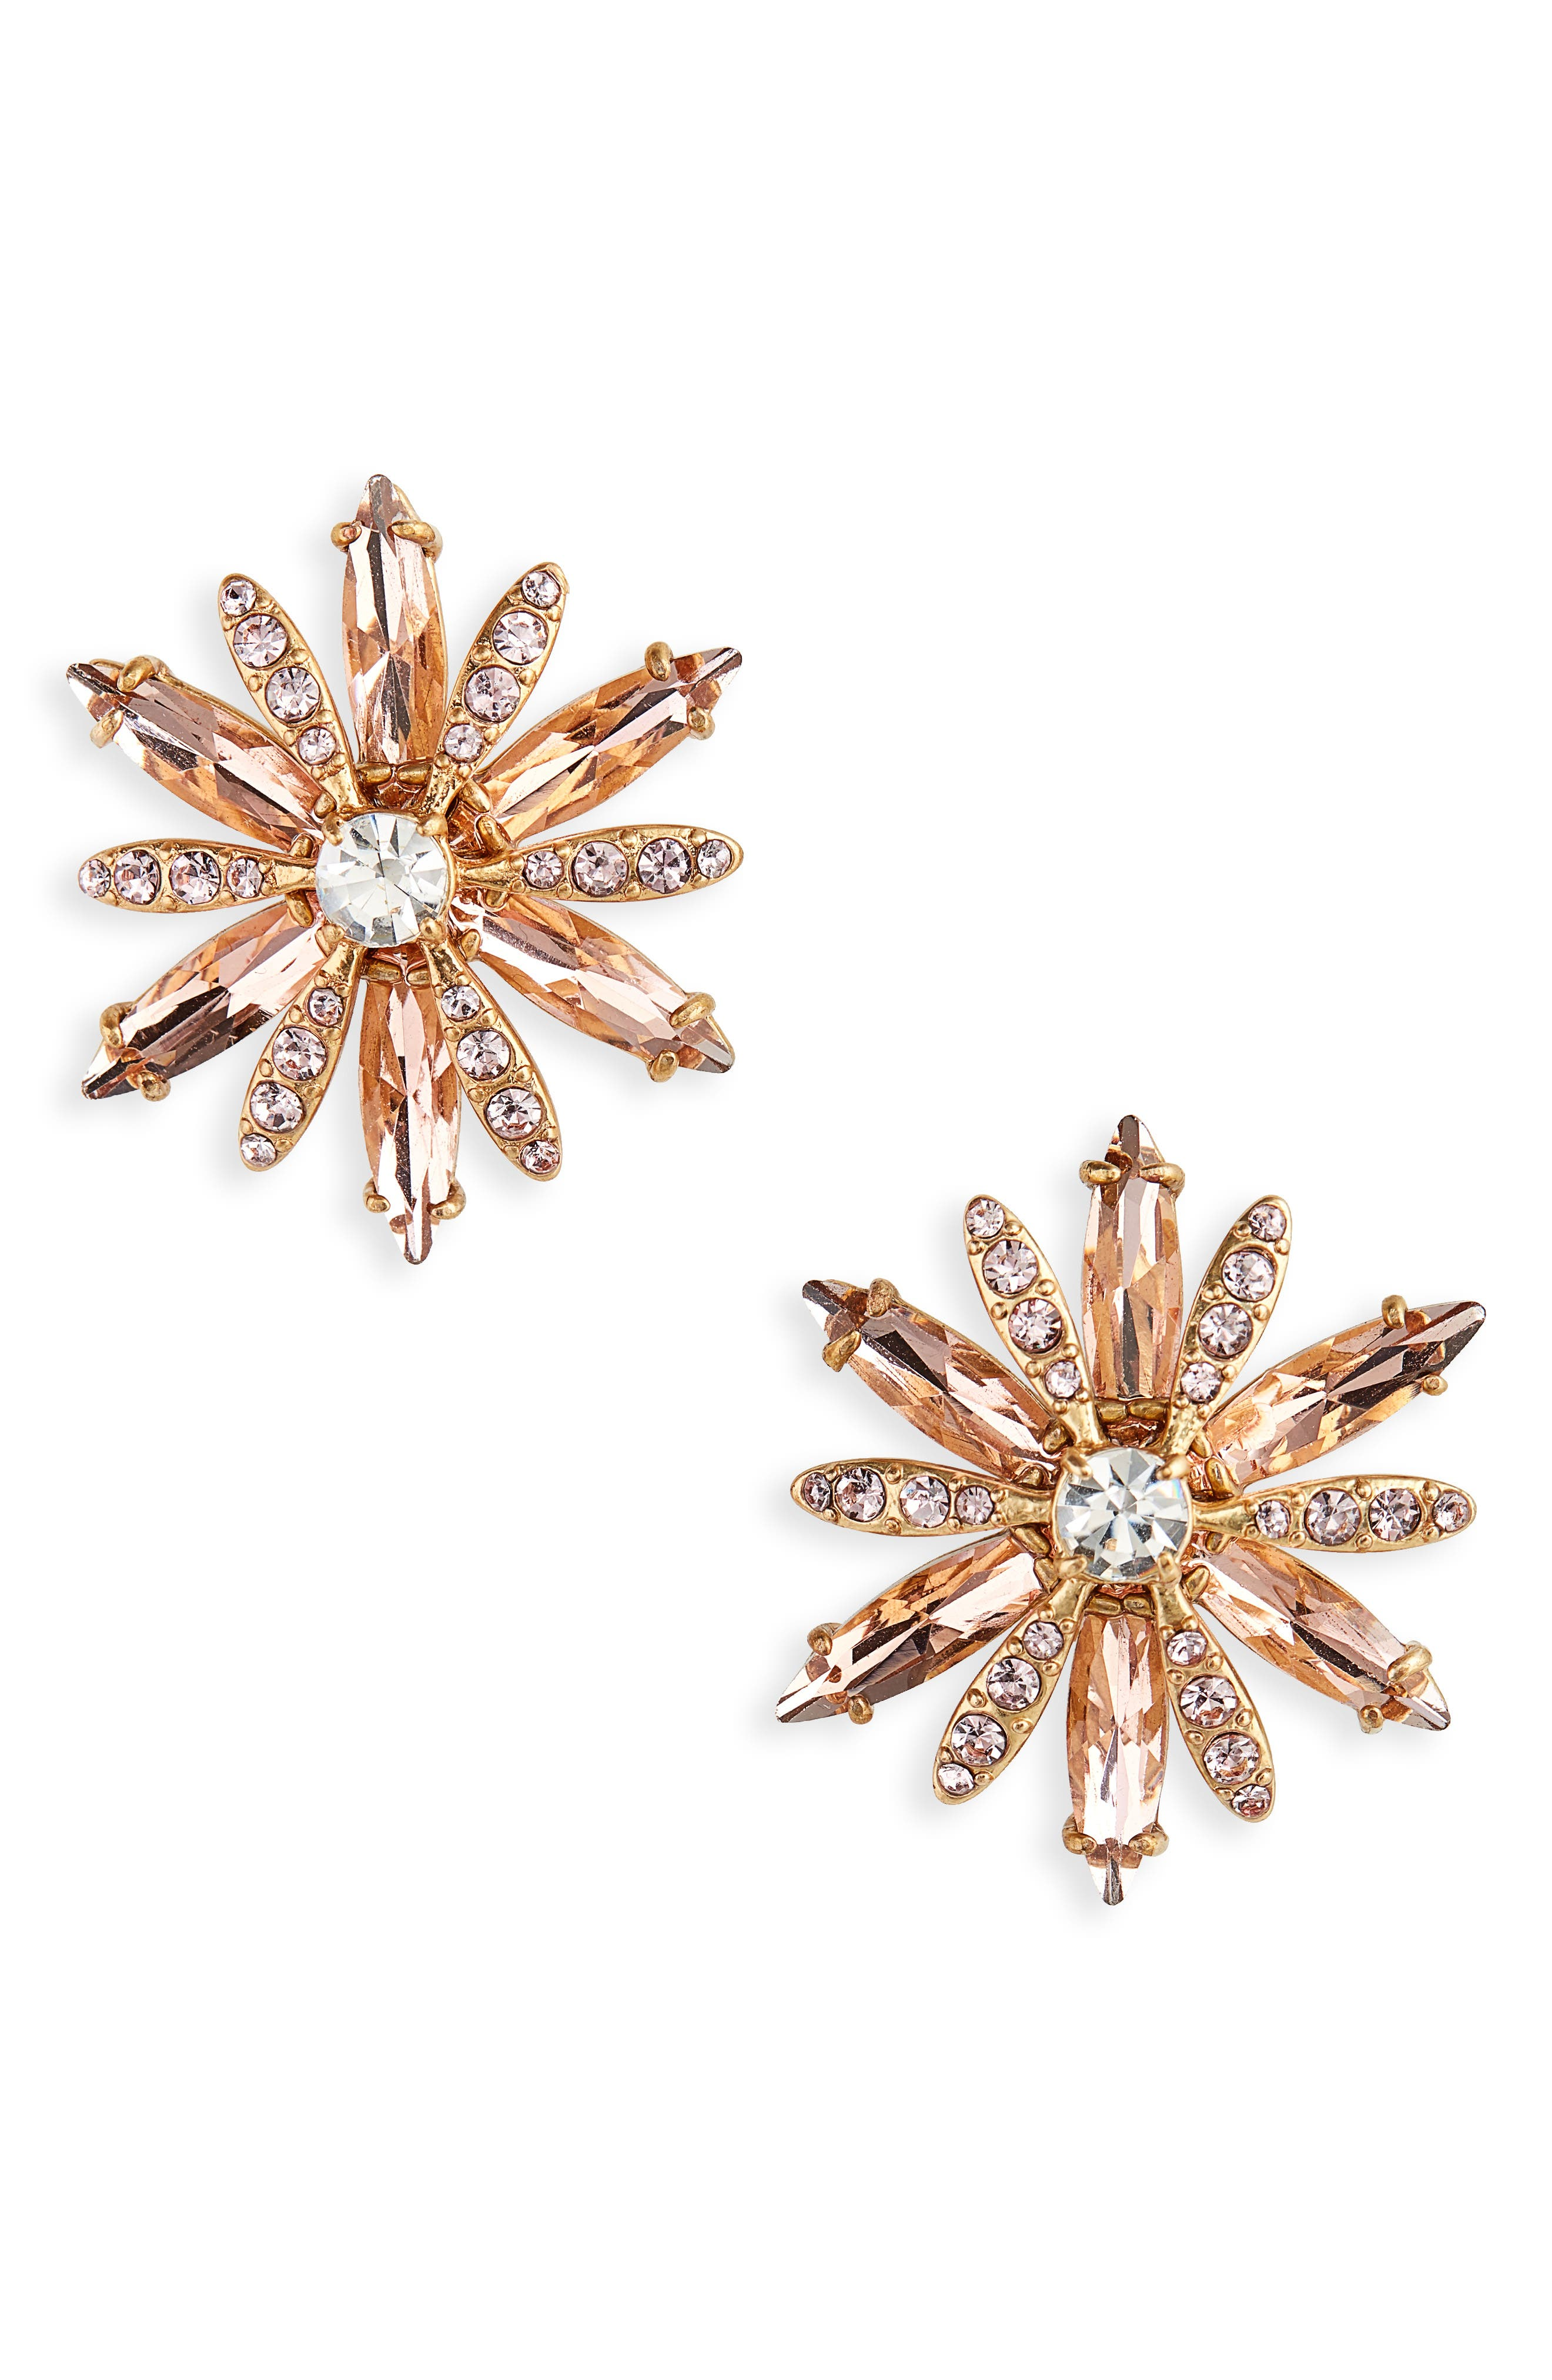 Crystal Cluster Earrings,                             Main thumbnail 1, color,                             650